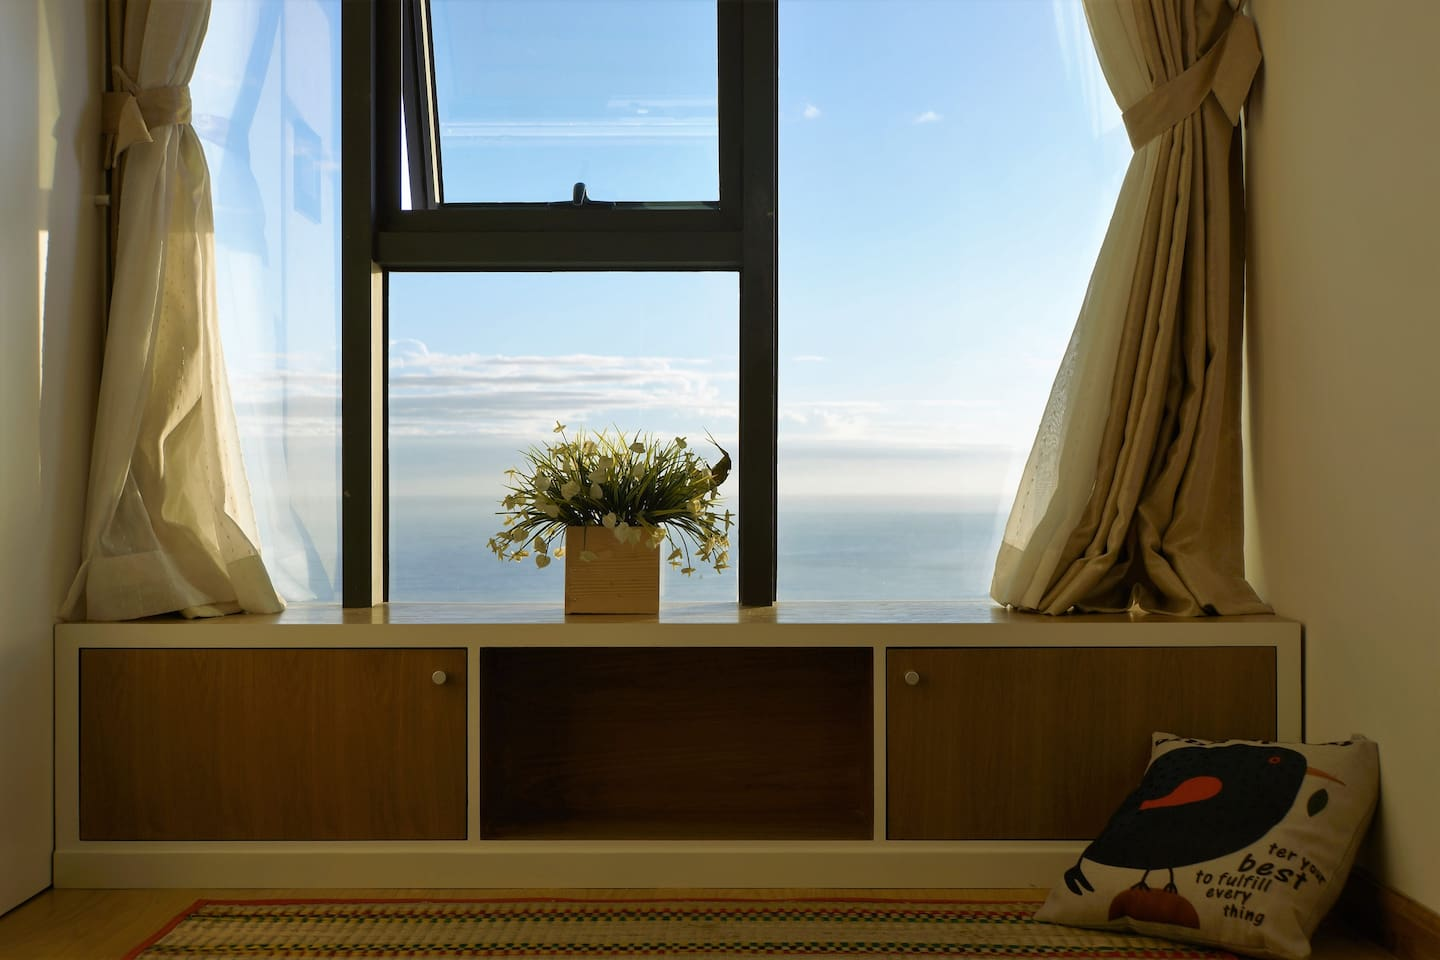 When the sea blends in the sky, view from the large front window